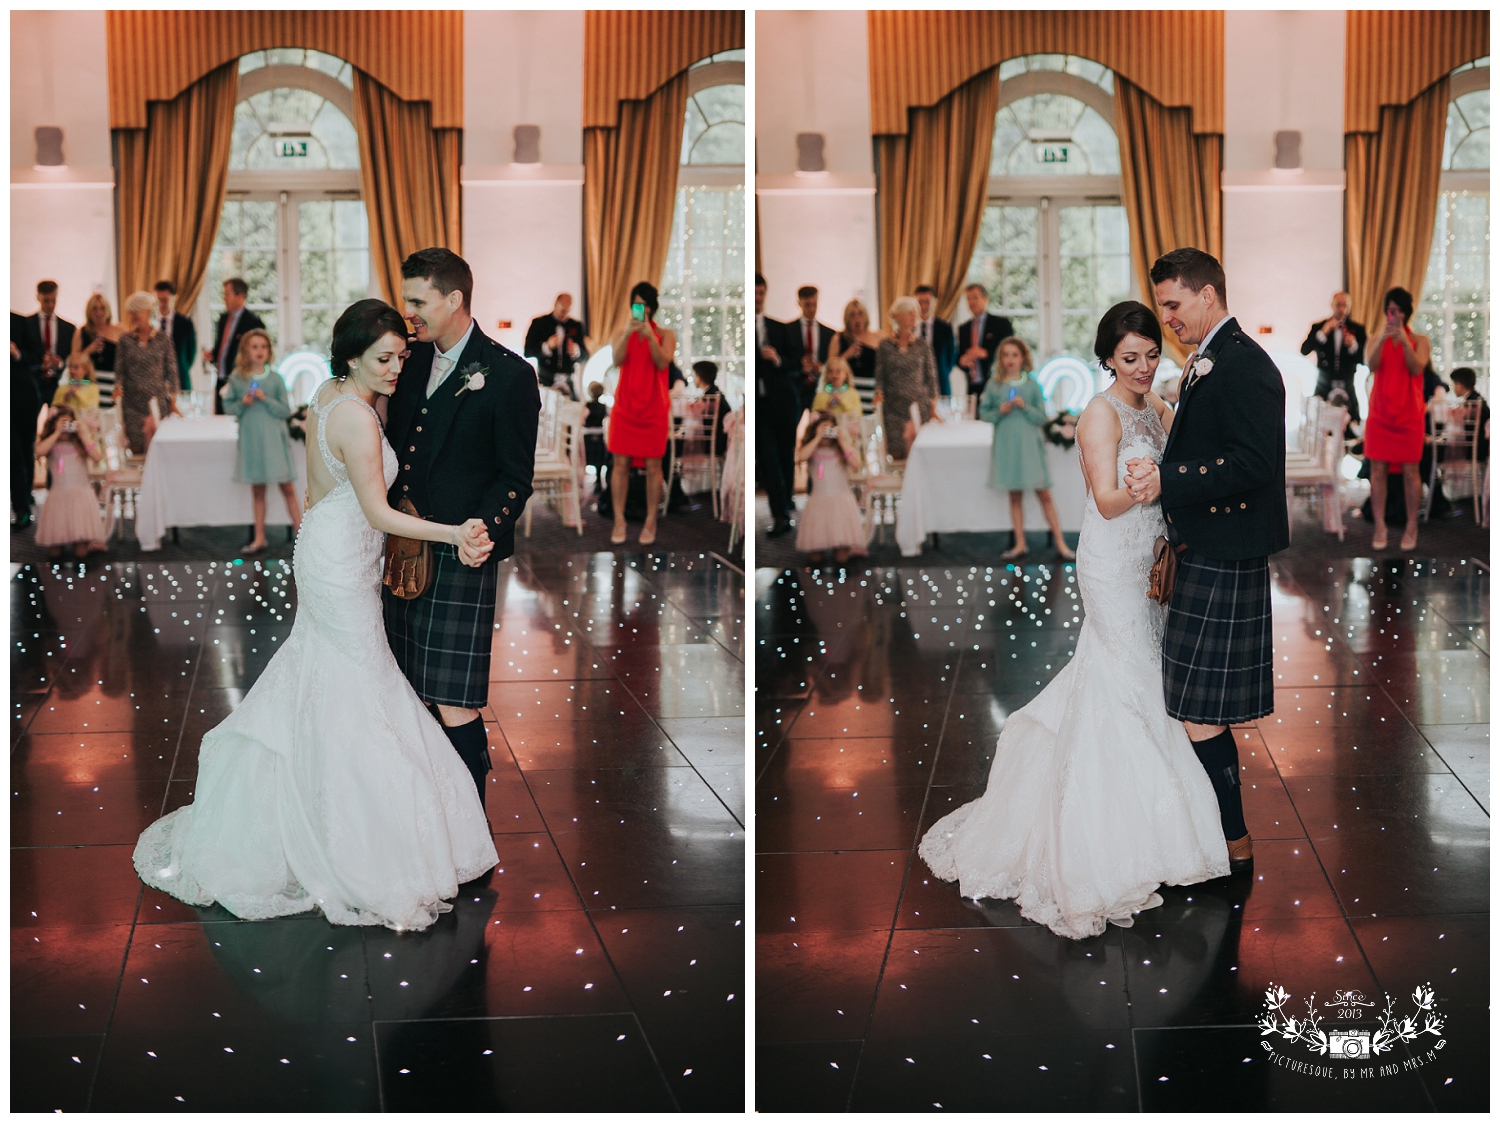 Balbirnie House Wedding, Picturesque by Mr and Mrs M_0060.jpg